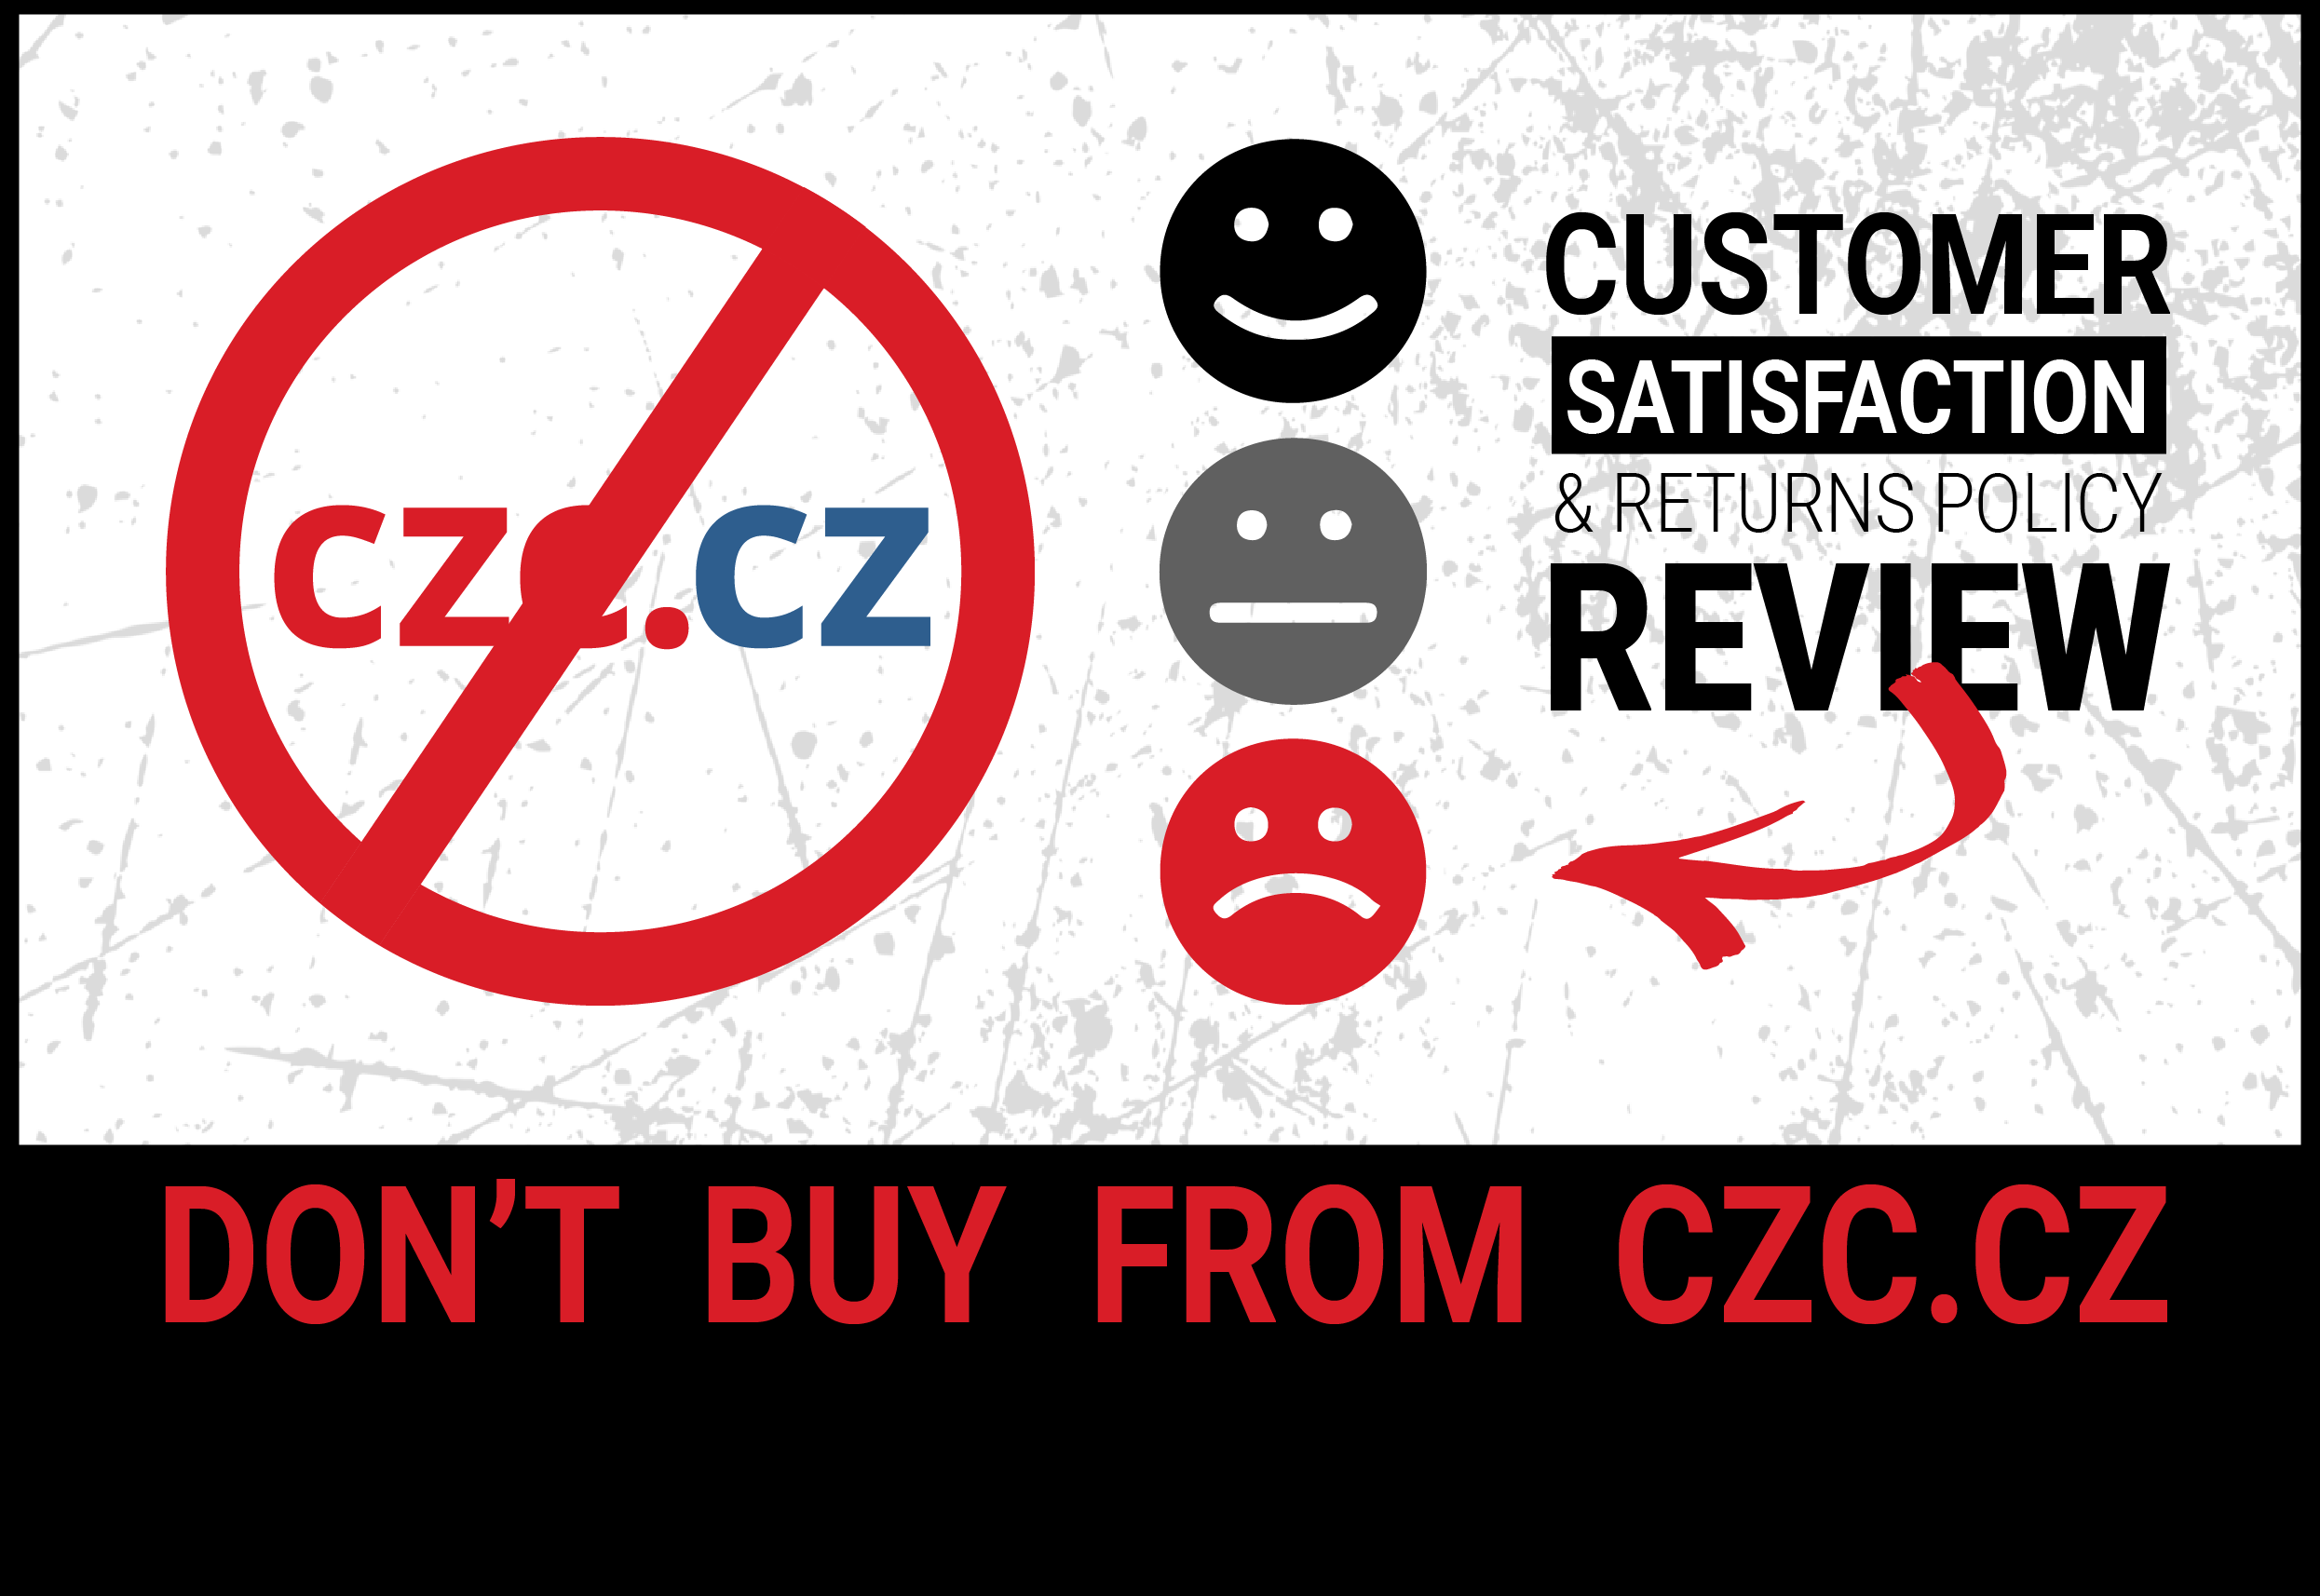 Review • CZC.cz Return Policy Disaster